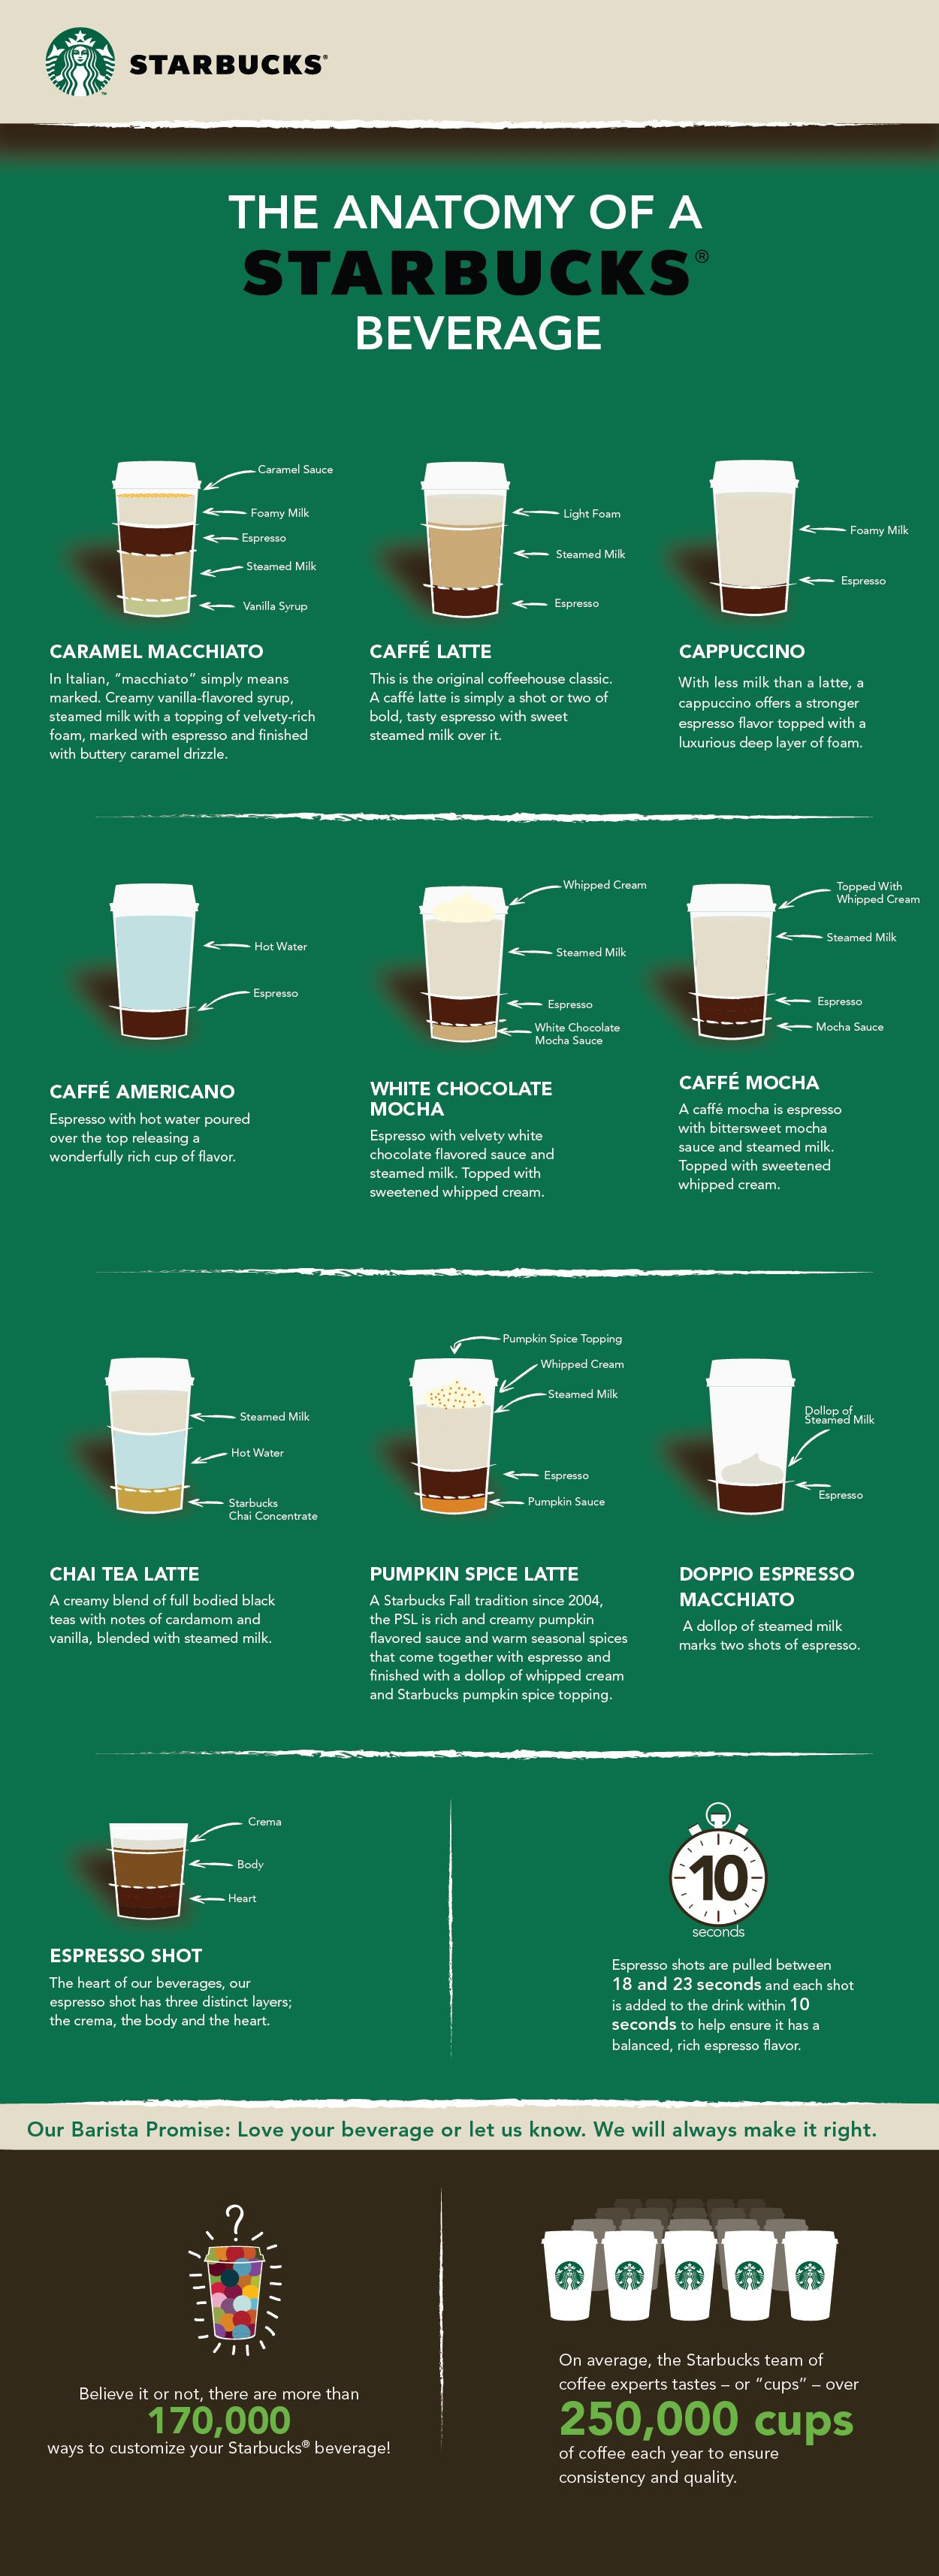 Image: http://news.starbucks.com/uploads/documents/Starbucks_Coffee_Infographic.jpg